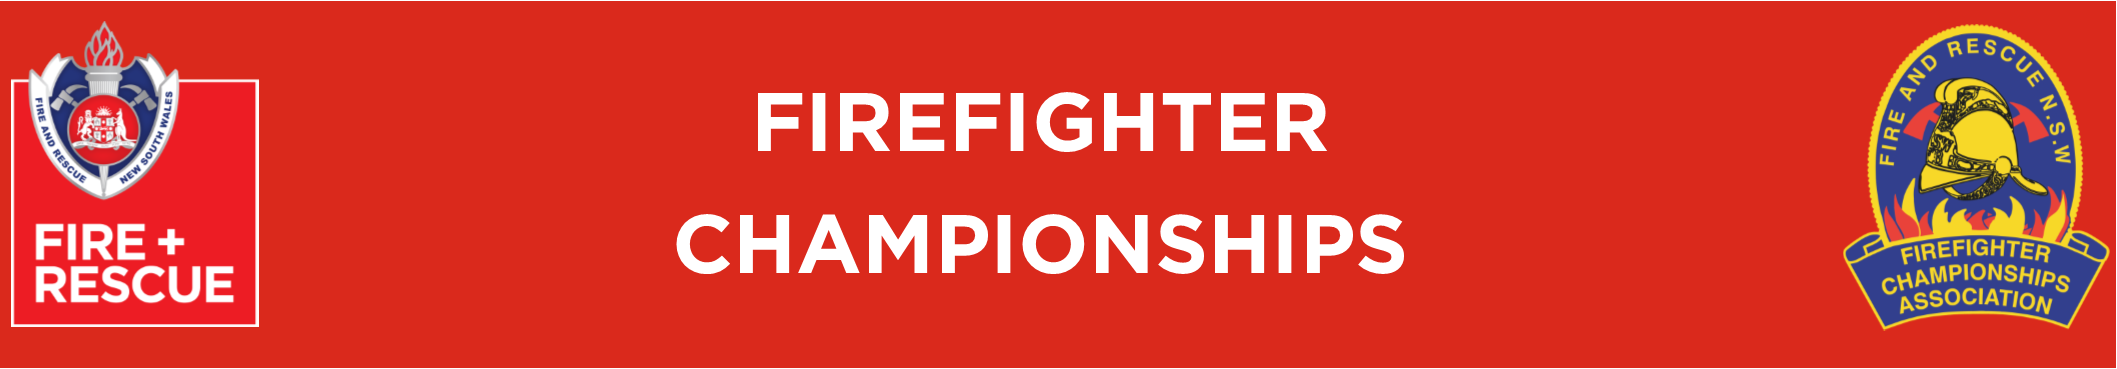 Firefighter Championships